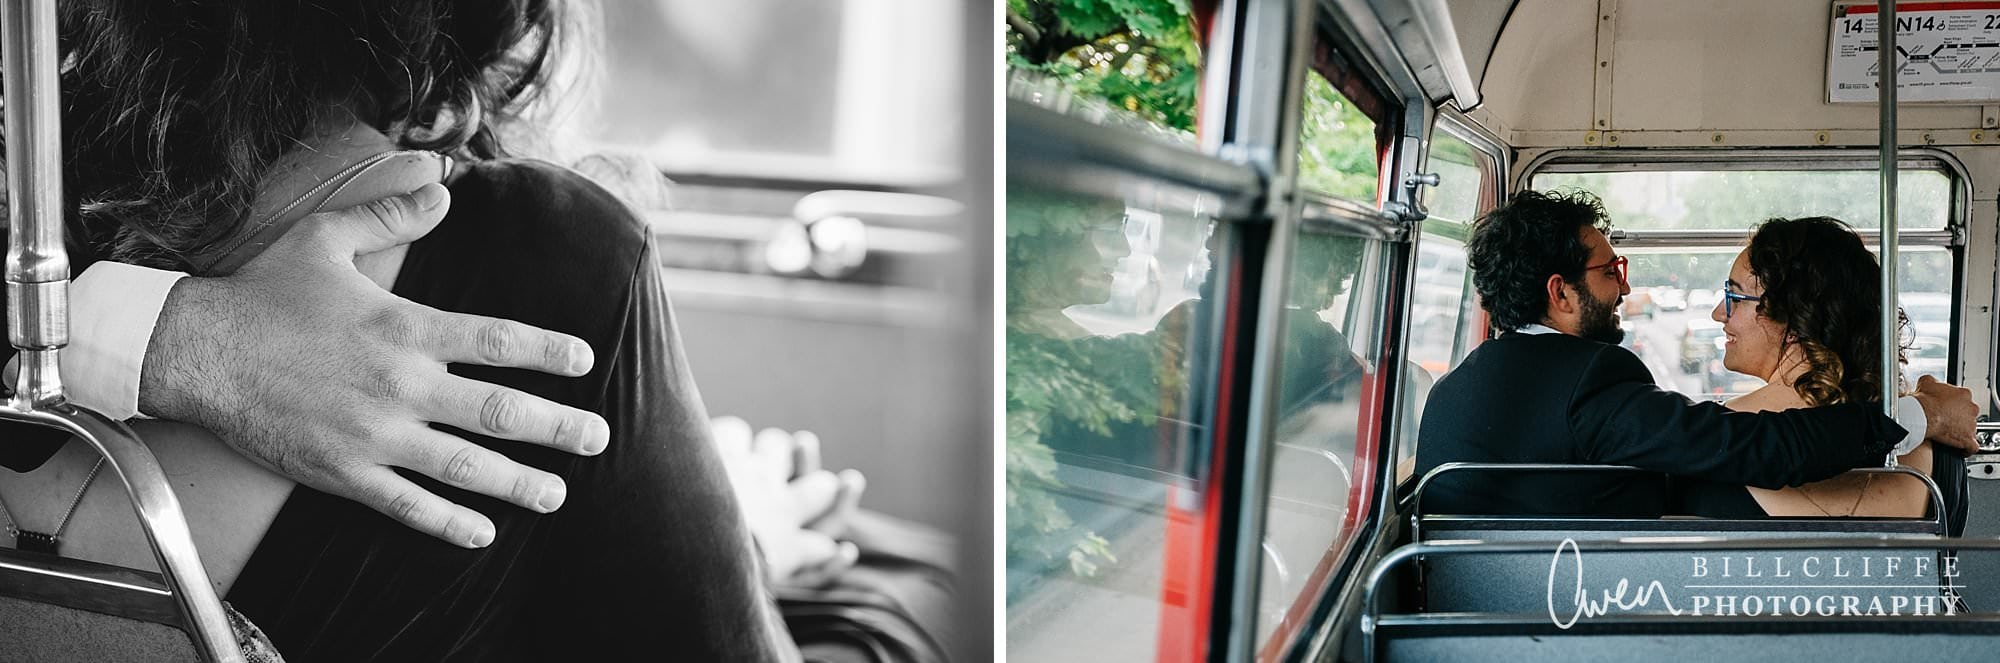 london engagement proposal photographer routemaster gr 005 - A Romantic Marriage Proposal on a London Routemaster Bus